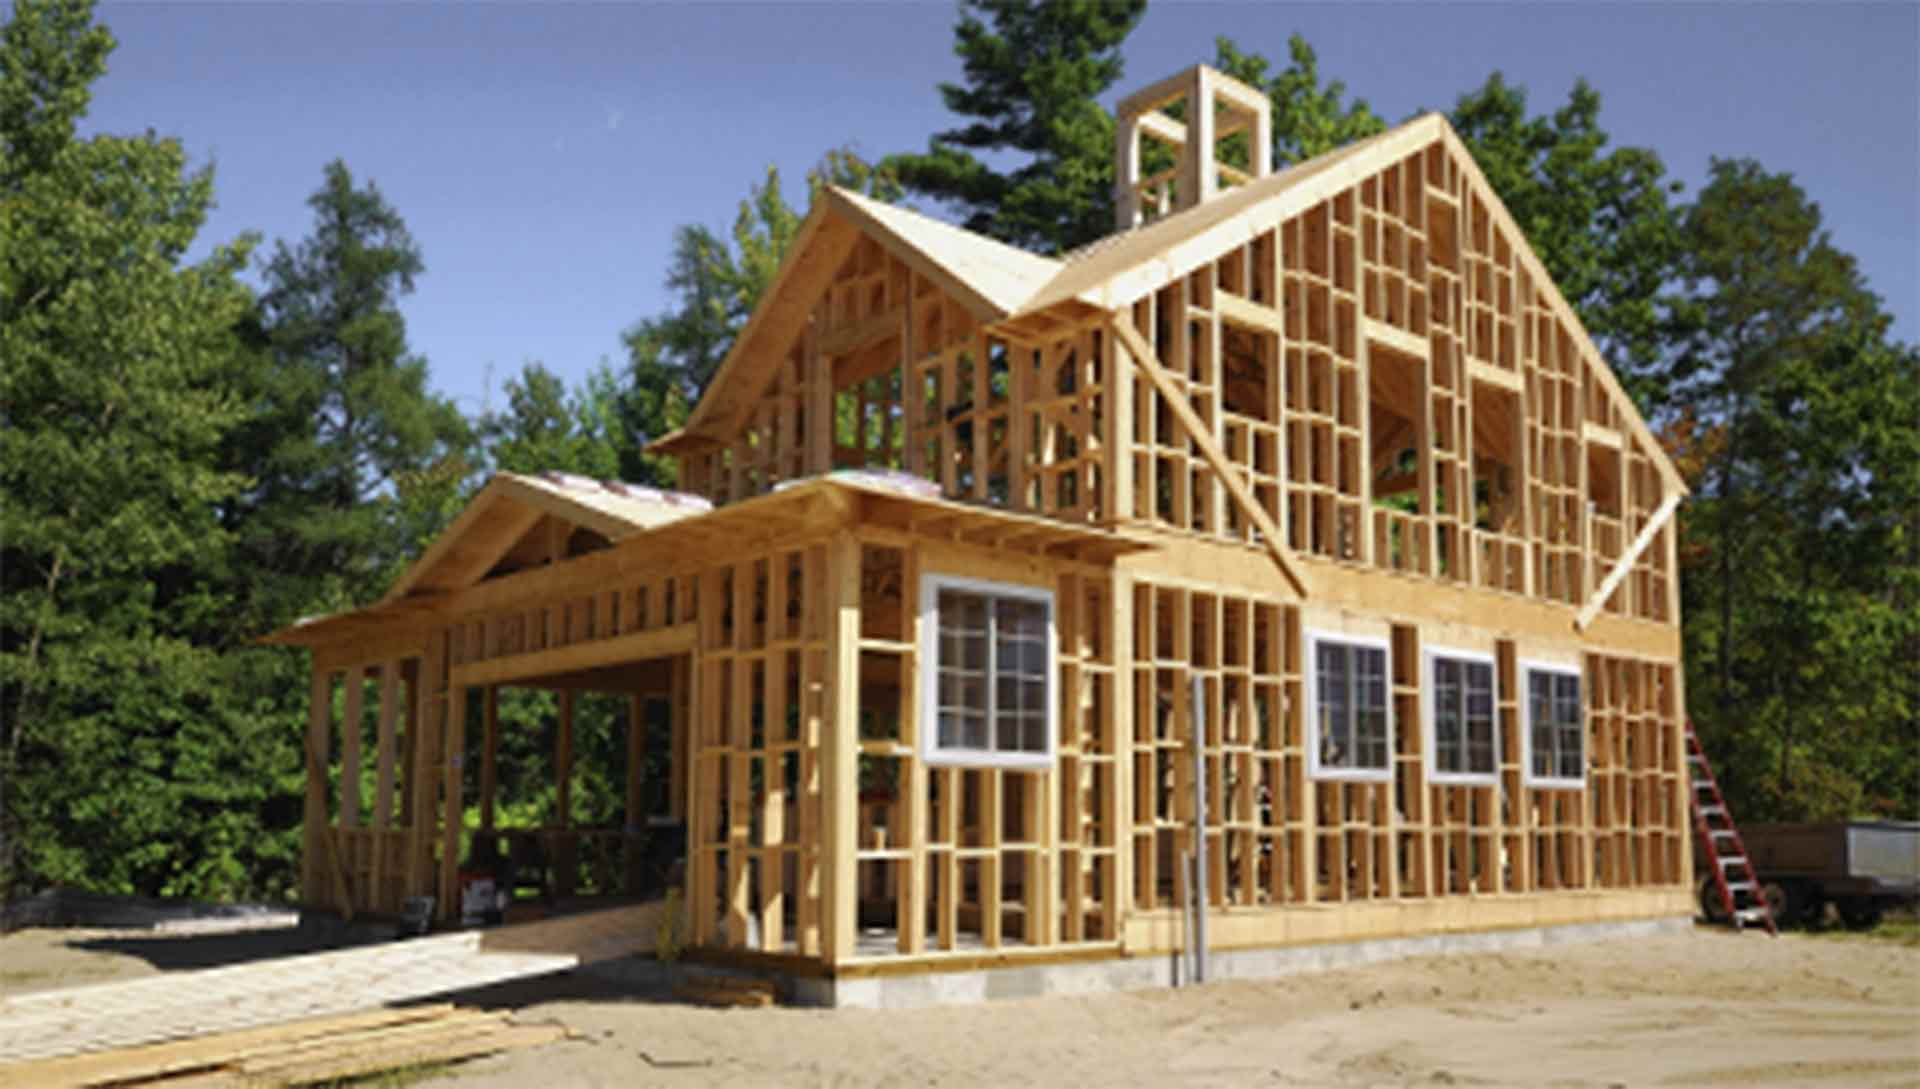 A photo of a house that has been framed, ready for installation of windows and doors.